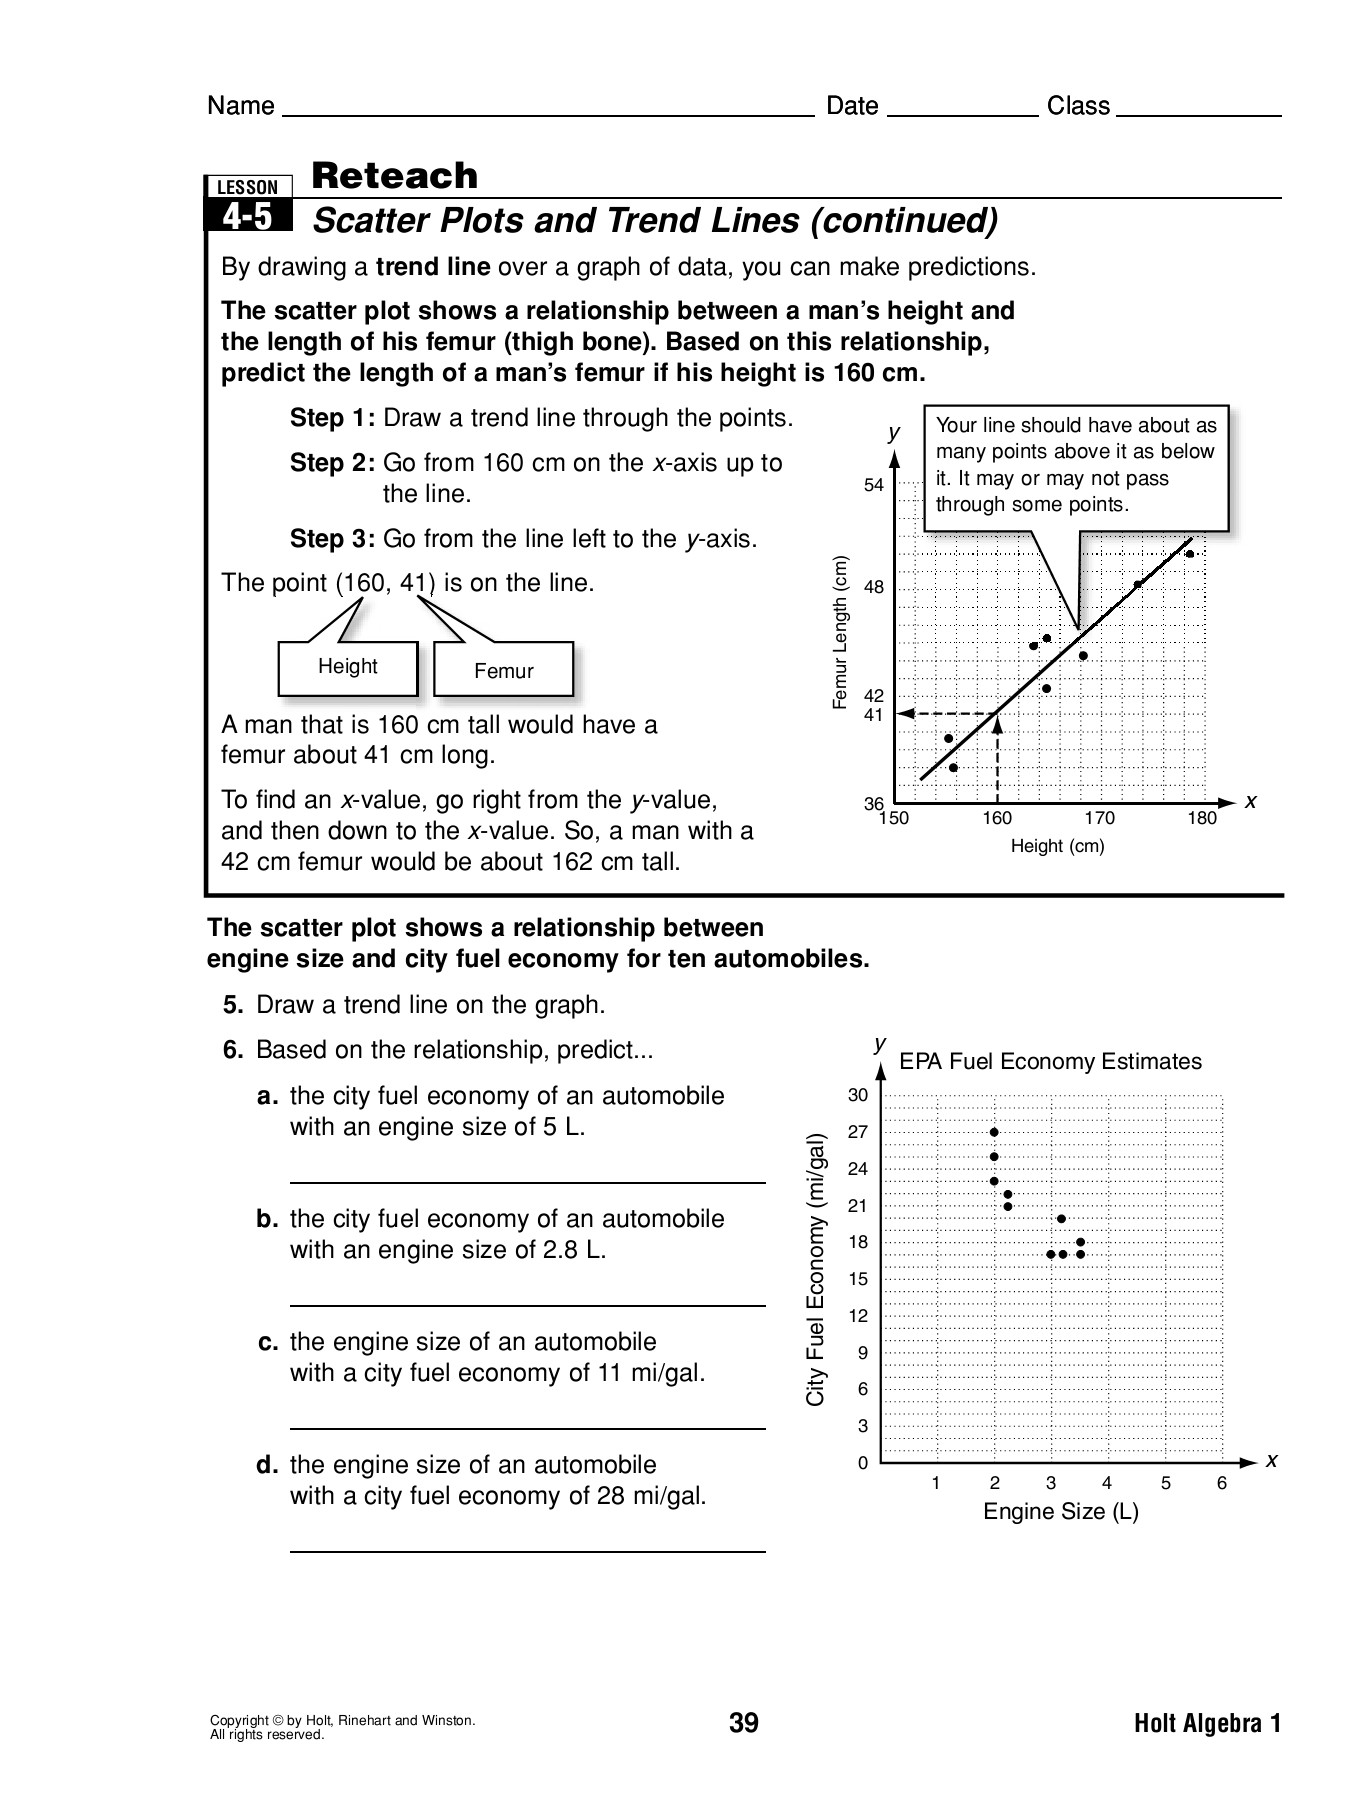 Reteach 4 5 Scatter Plots And Trend Lines Amazon S3 Pages